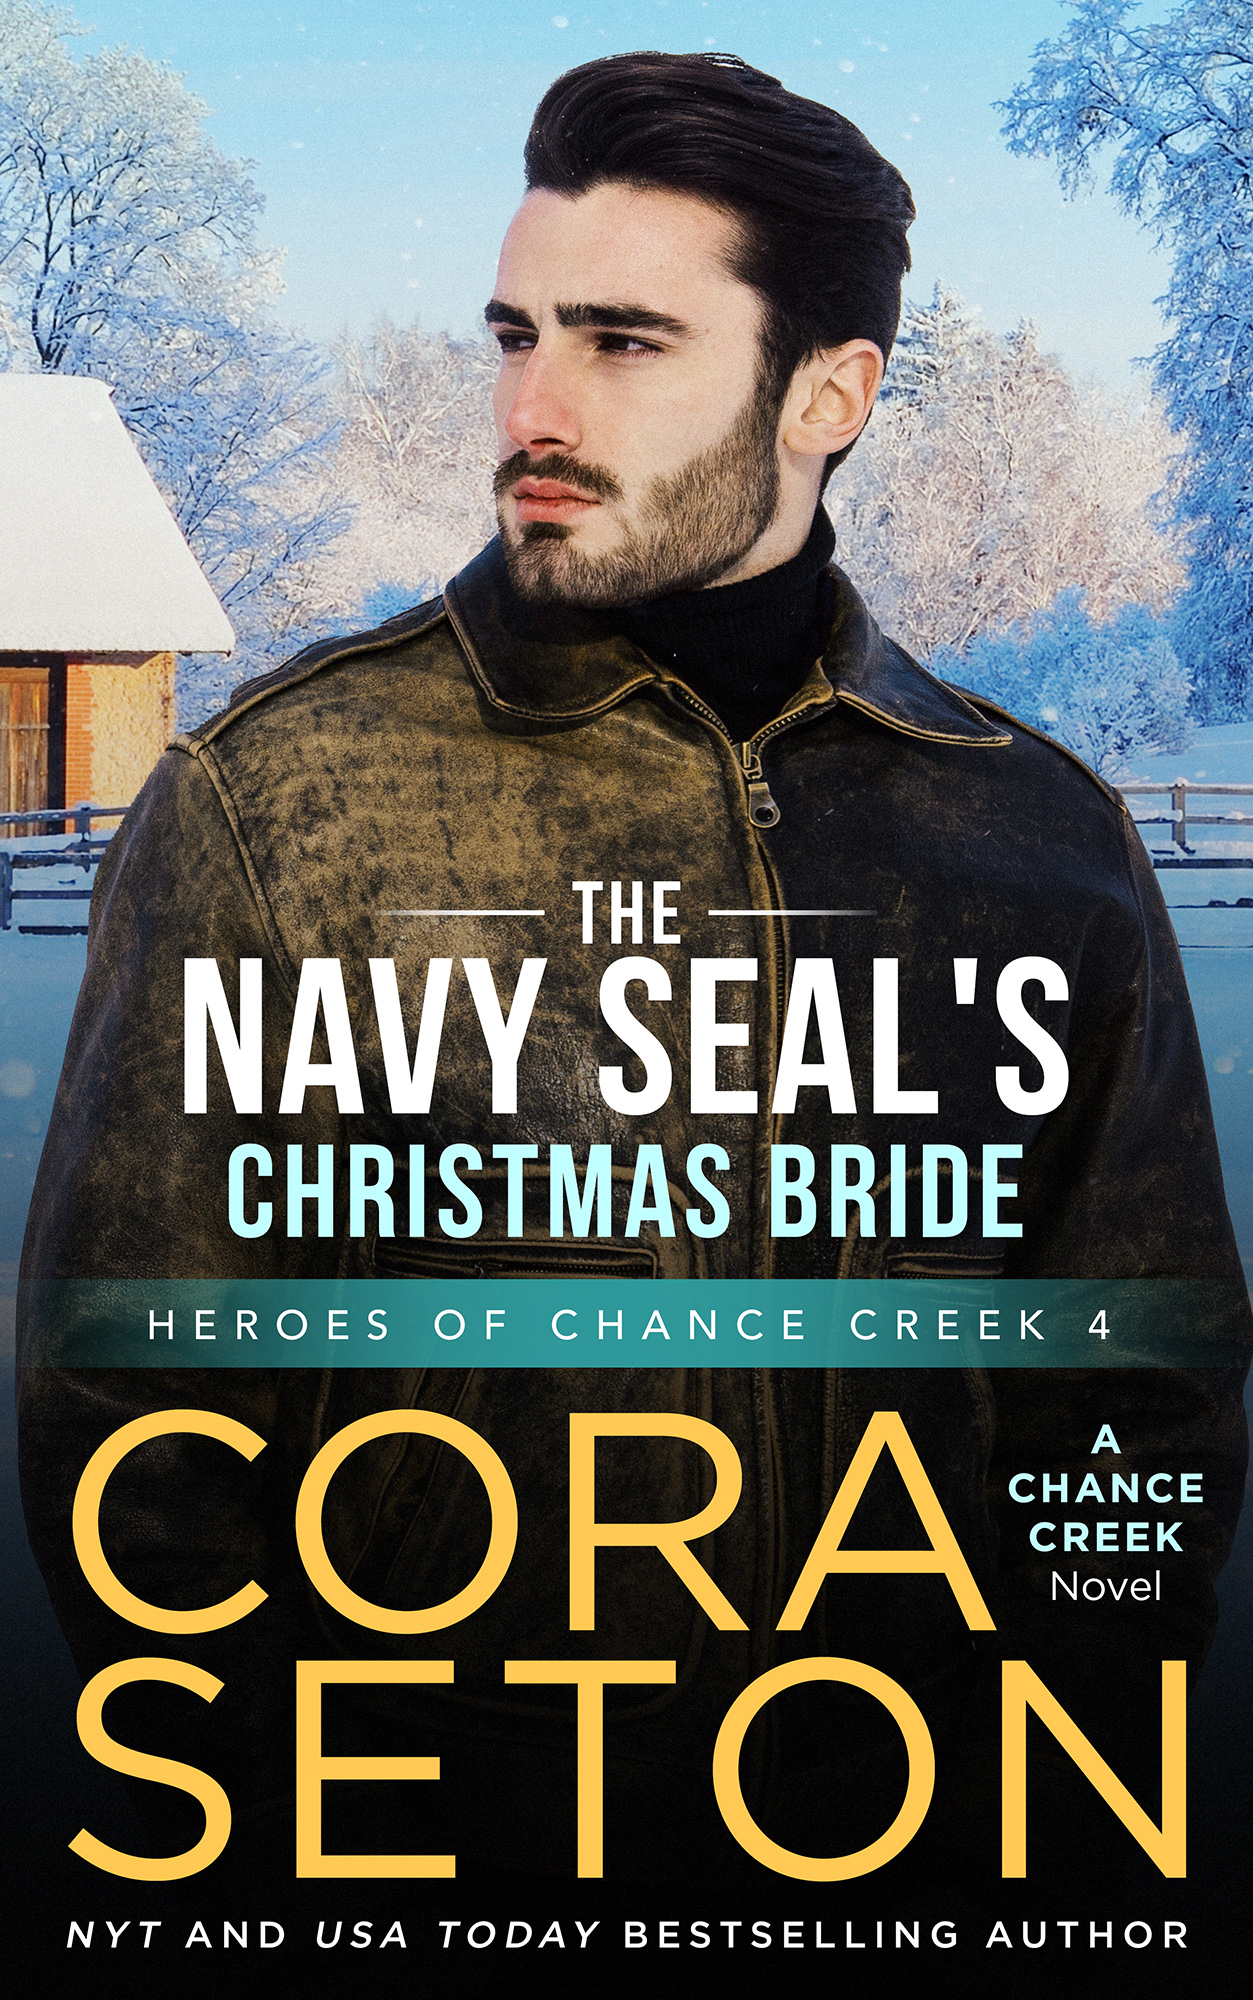 The Navy SEAL's Christmas Bride (Book 4)